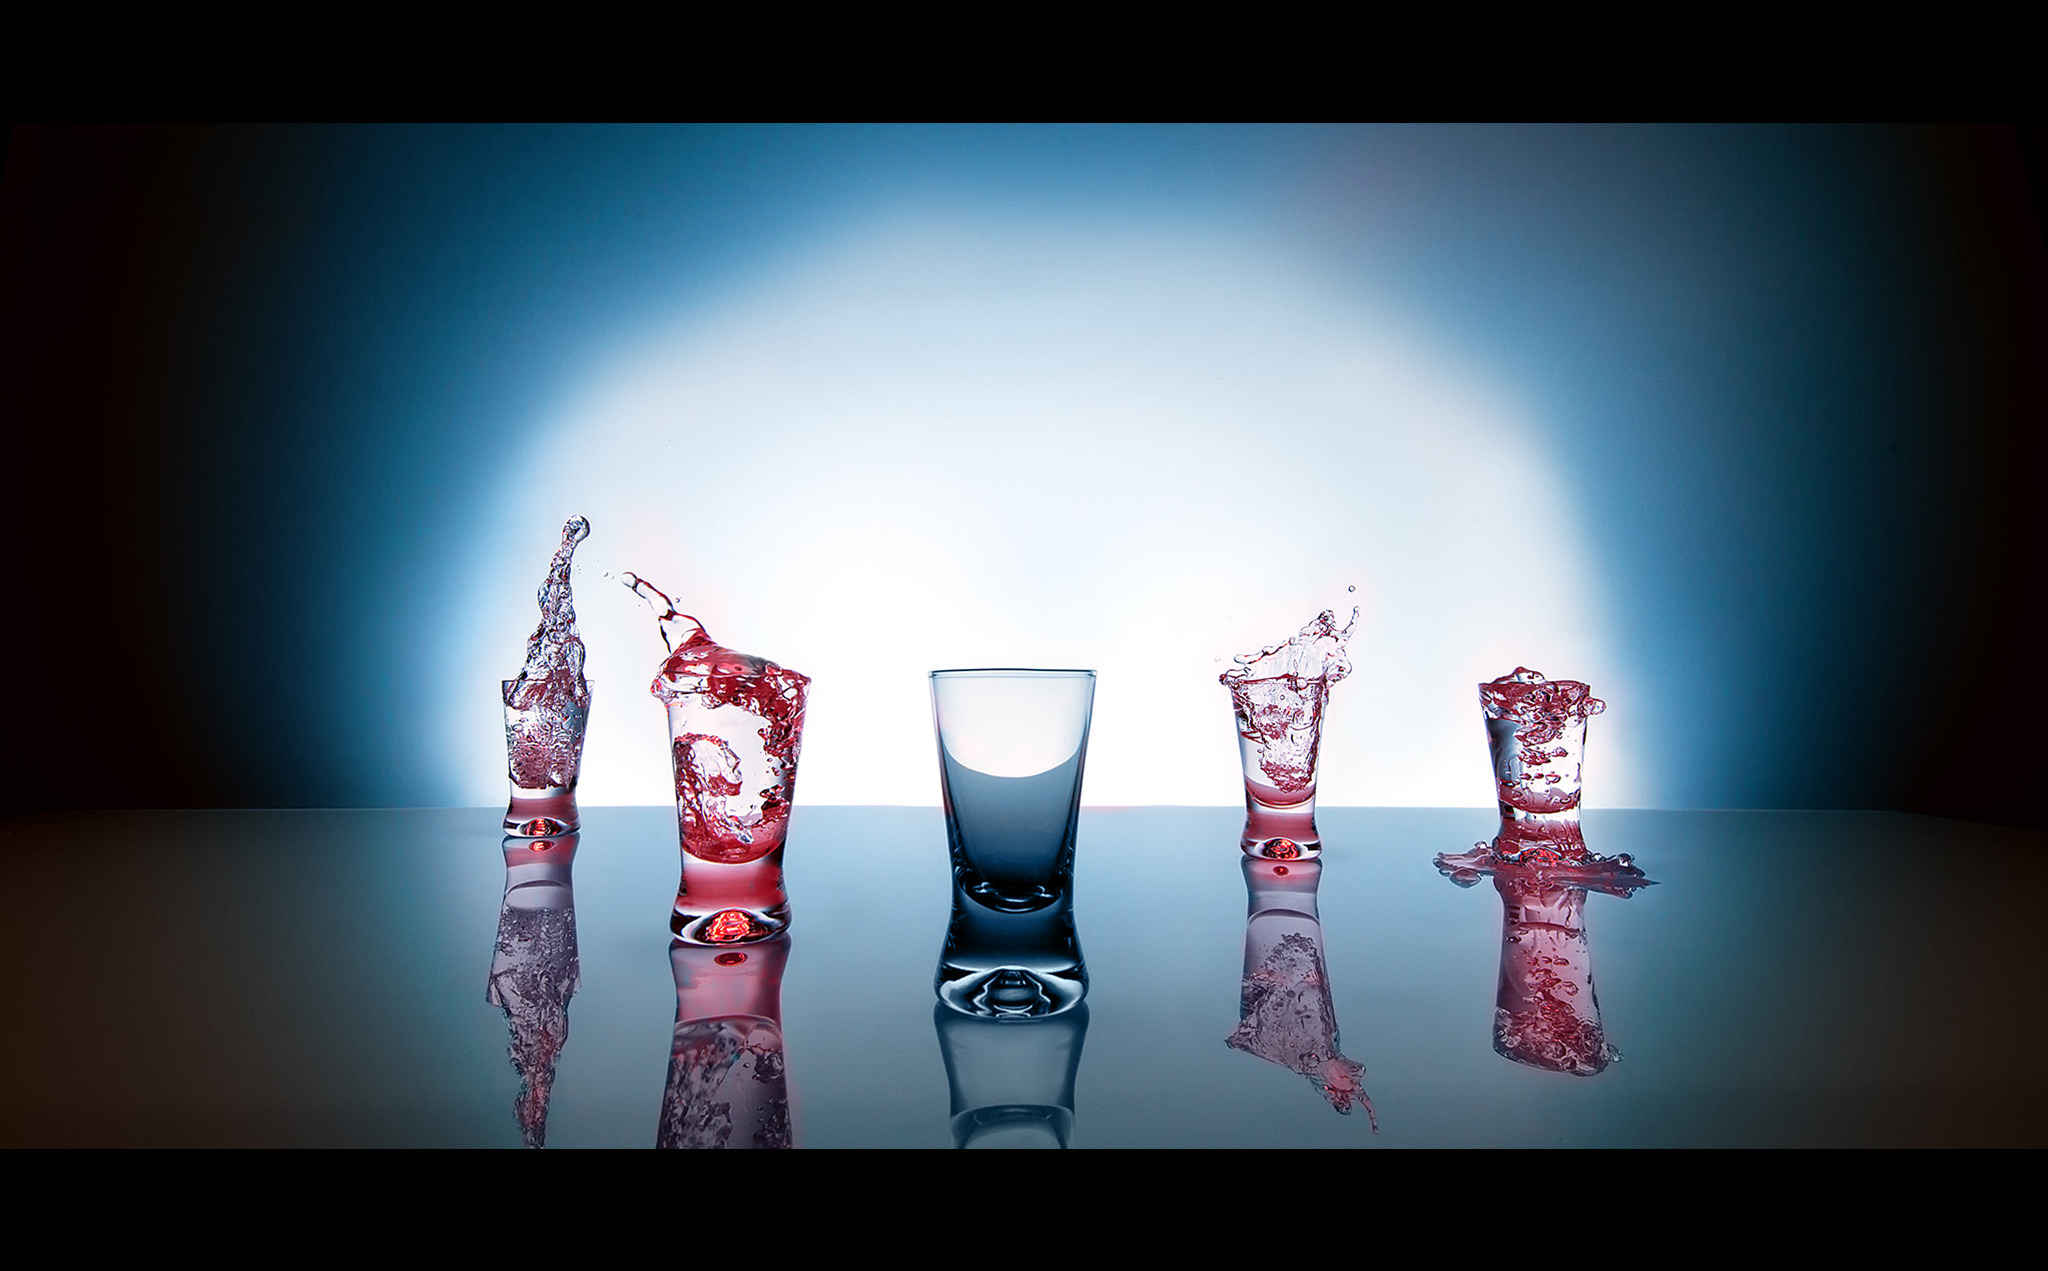 Stand Still - vodka glasses concept shot